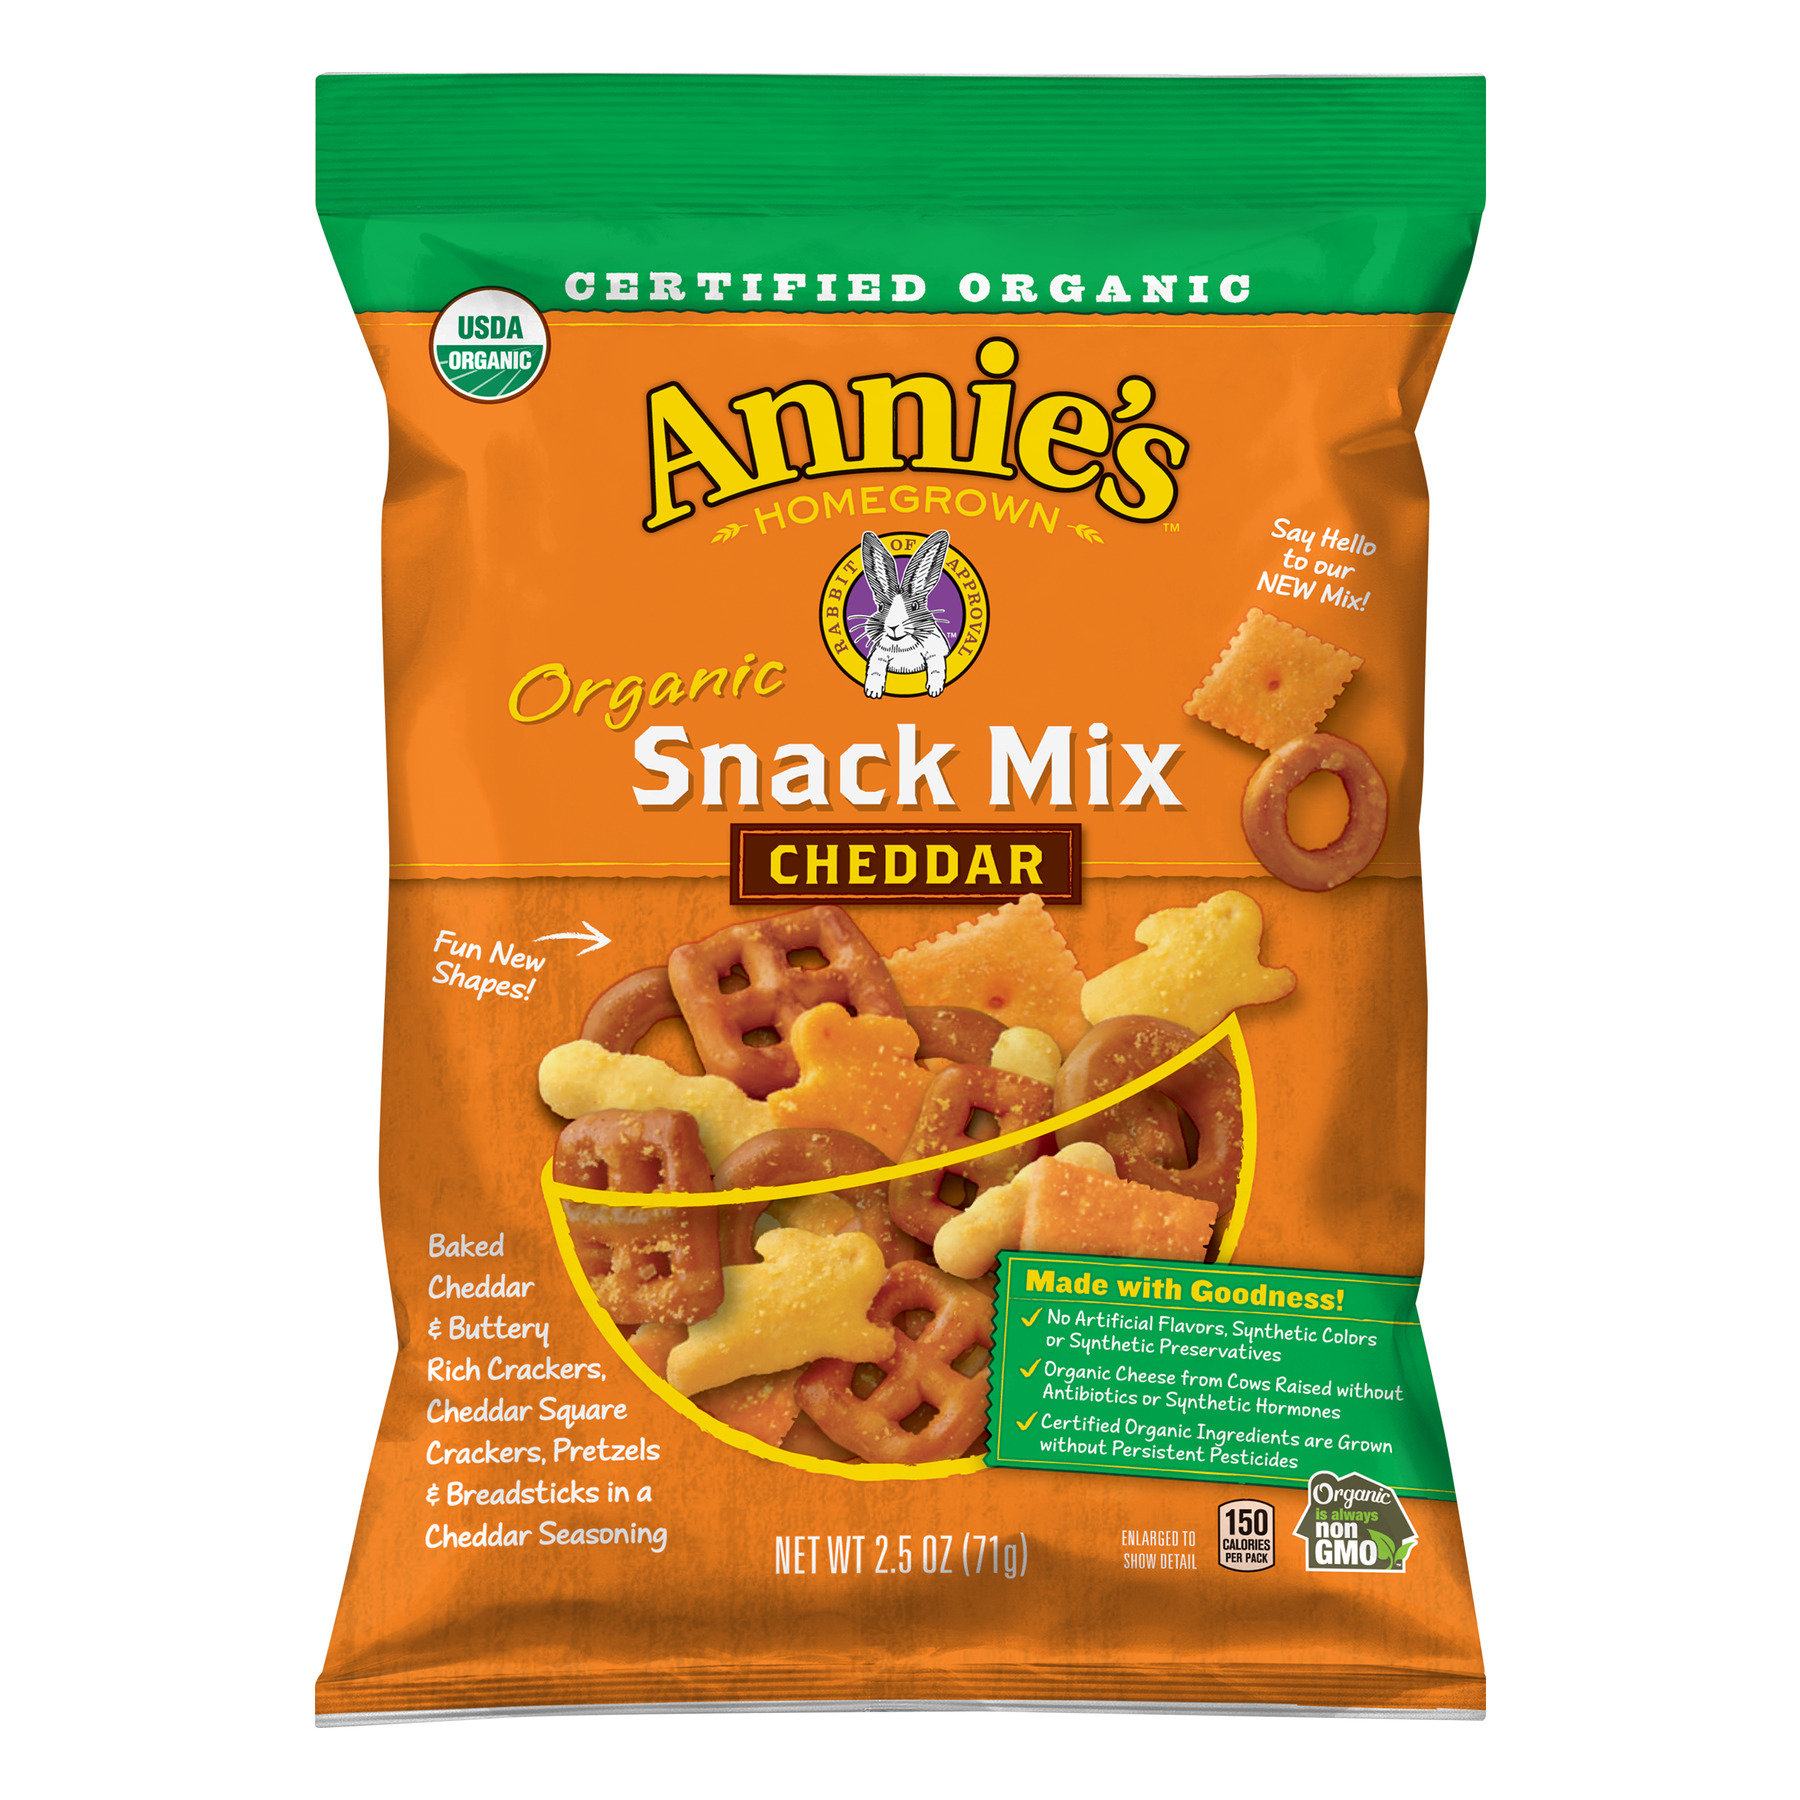 Annie's Certified Organic Cheddar Snack Mix, 2.5 oz Box